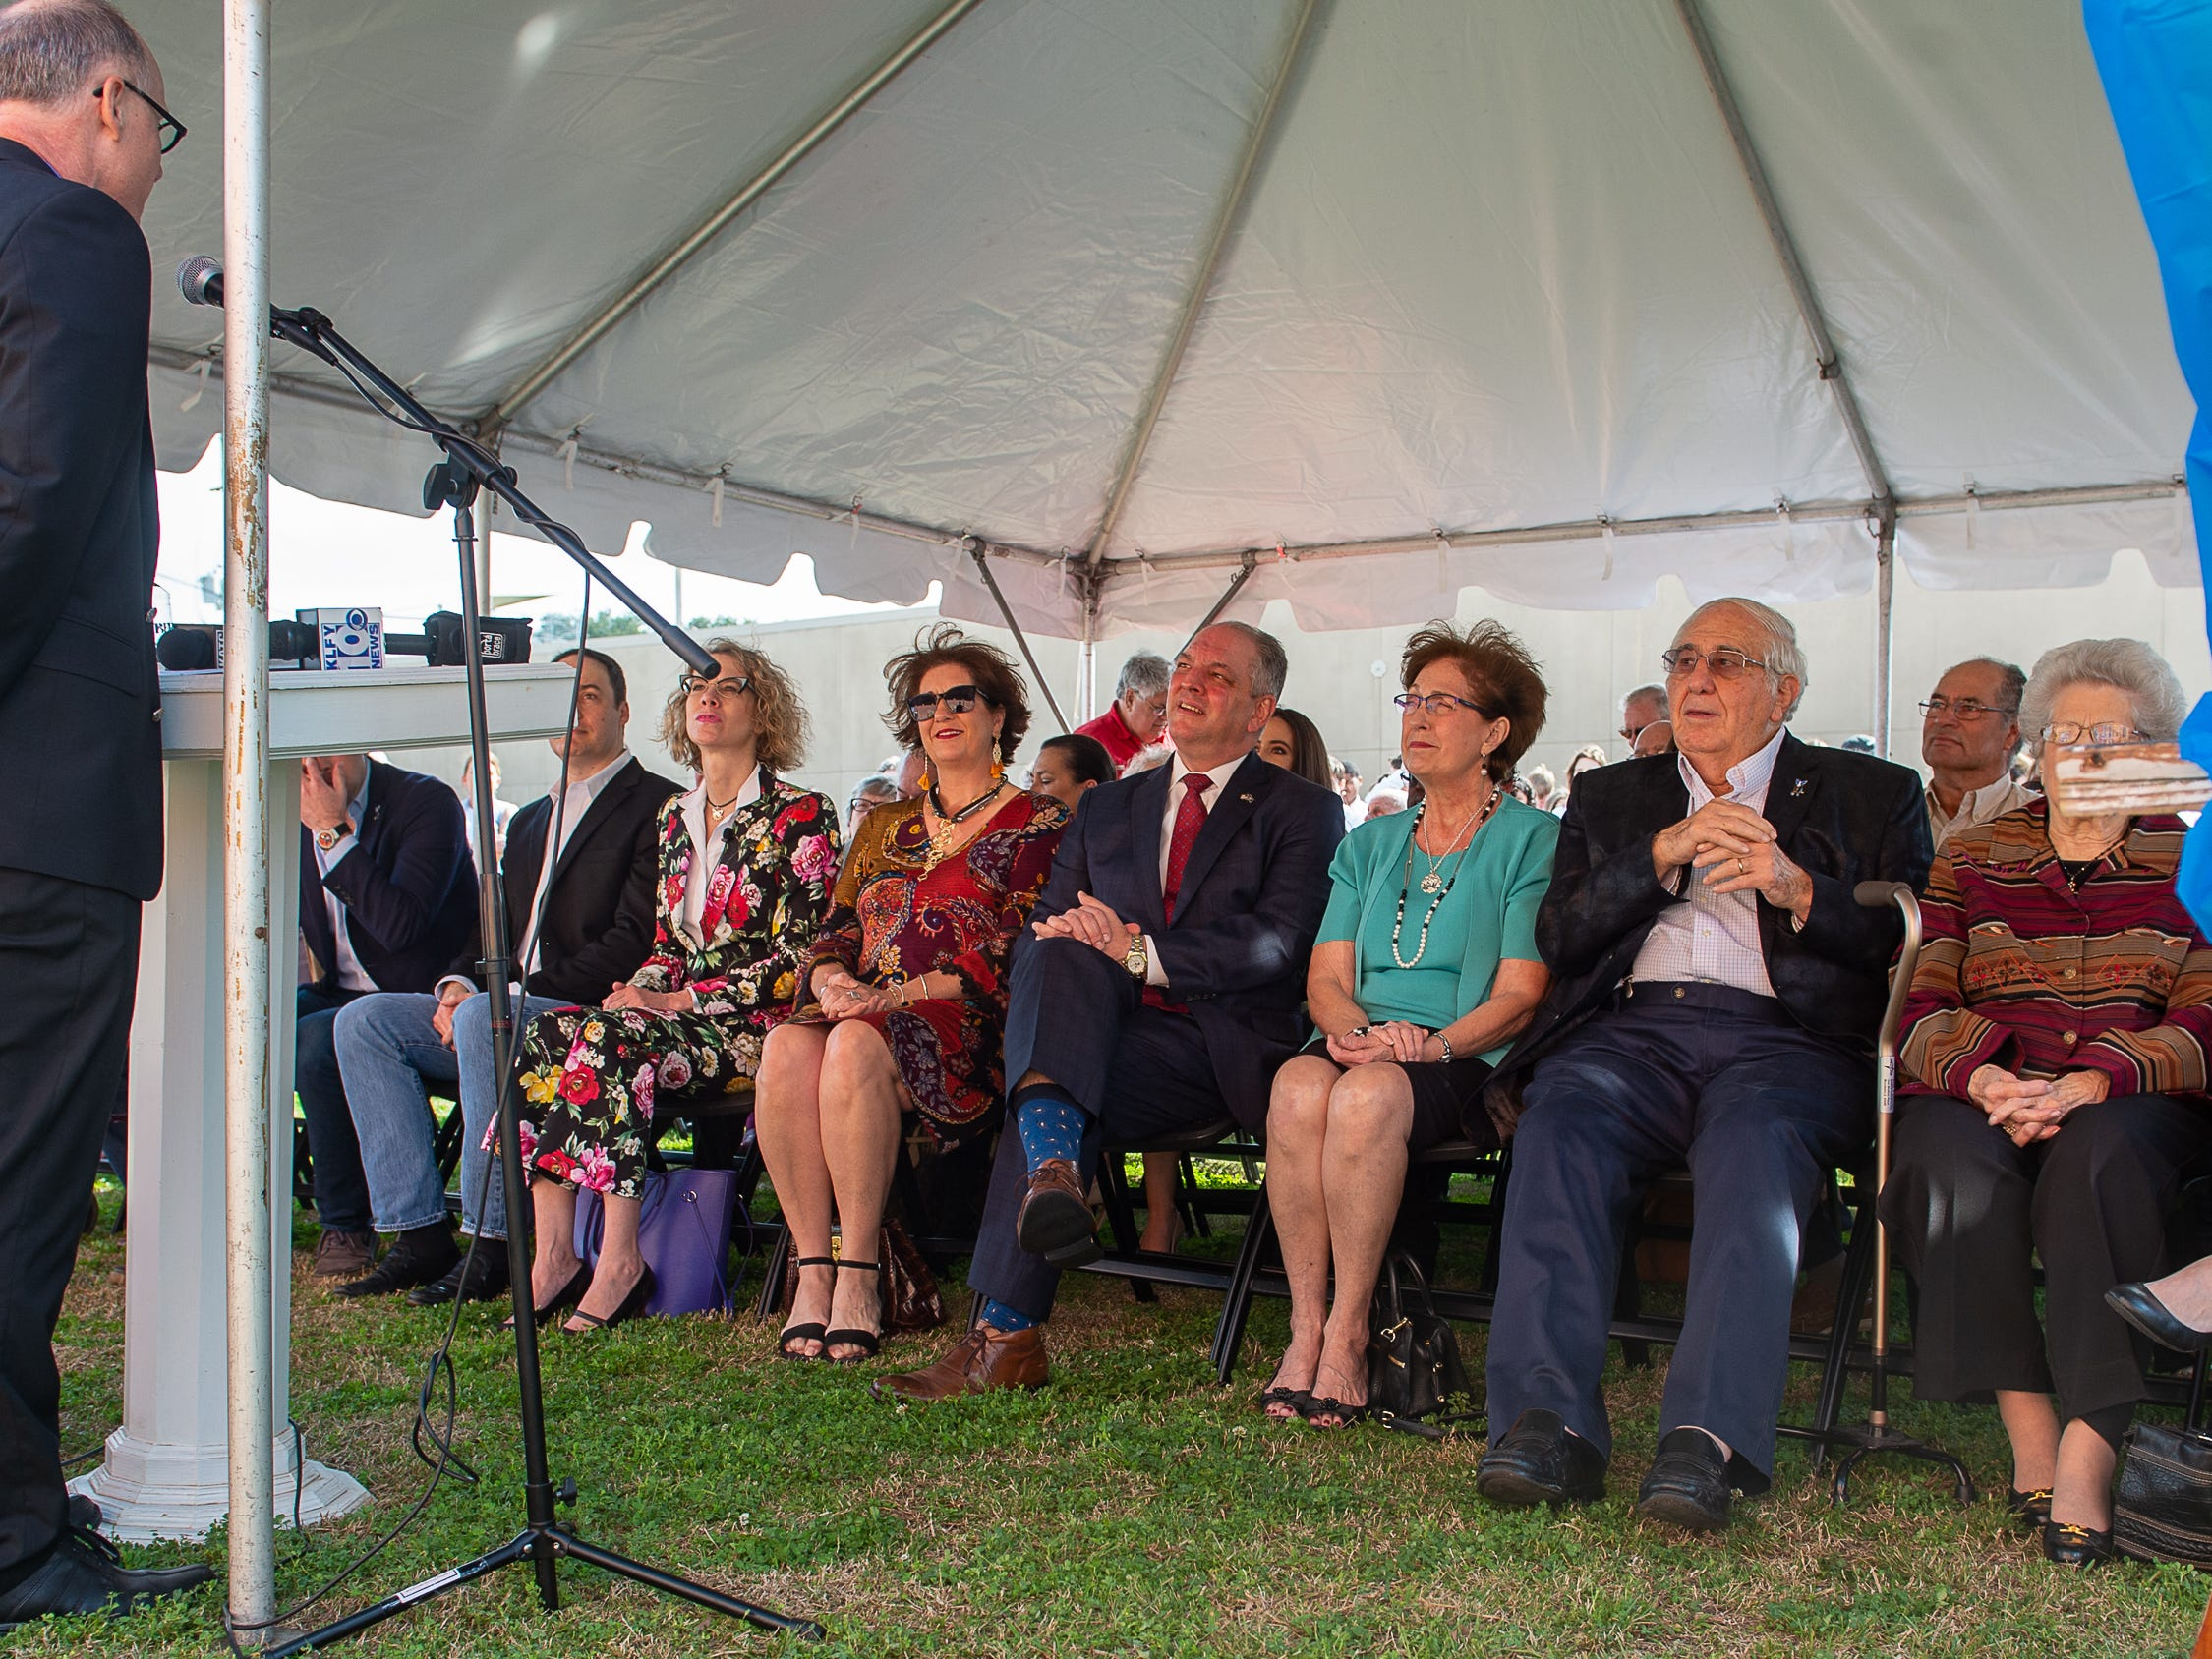 Gov. John Bel Edwards attends the groundbreaking for the George Rodrigue Park and the dedication ceremony of the Gov. Kathleen Blanco exhibit in the Doc Voorhies wing of the Bayou Teche Museum.  Thursday, Feb. 7, 2019.